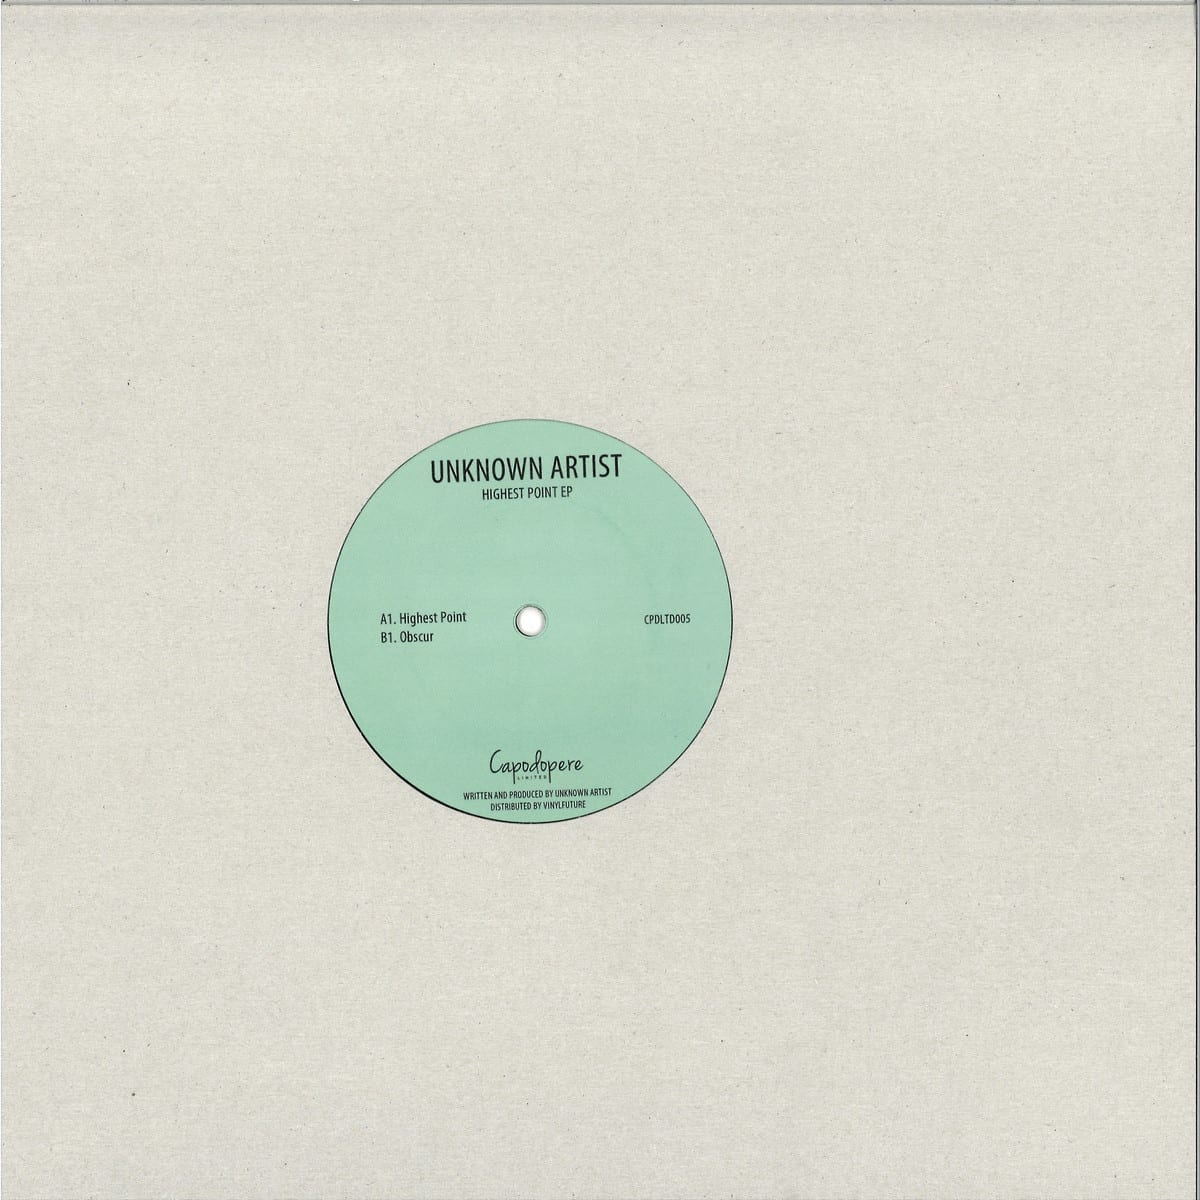 Unknown Artist - Highest Point EP [Capodopere] side a